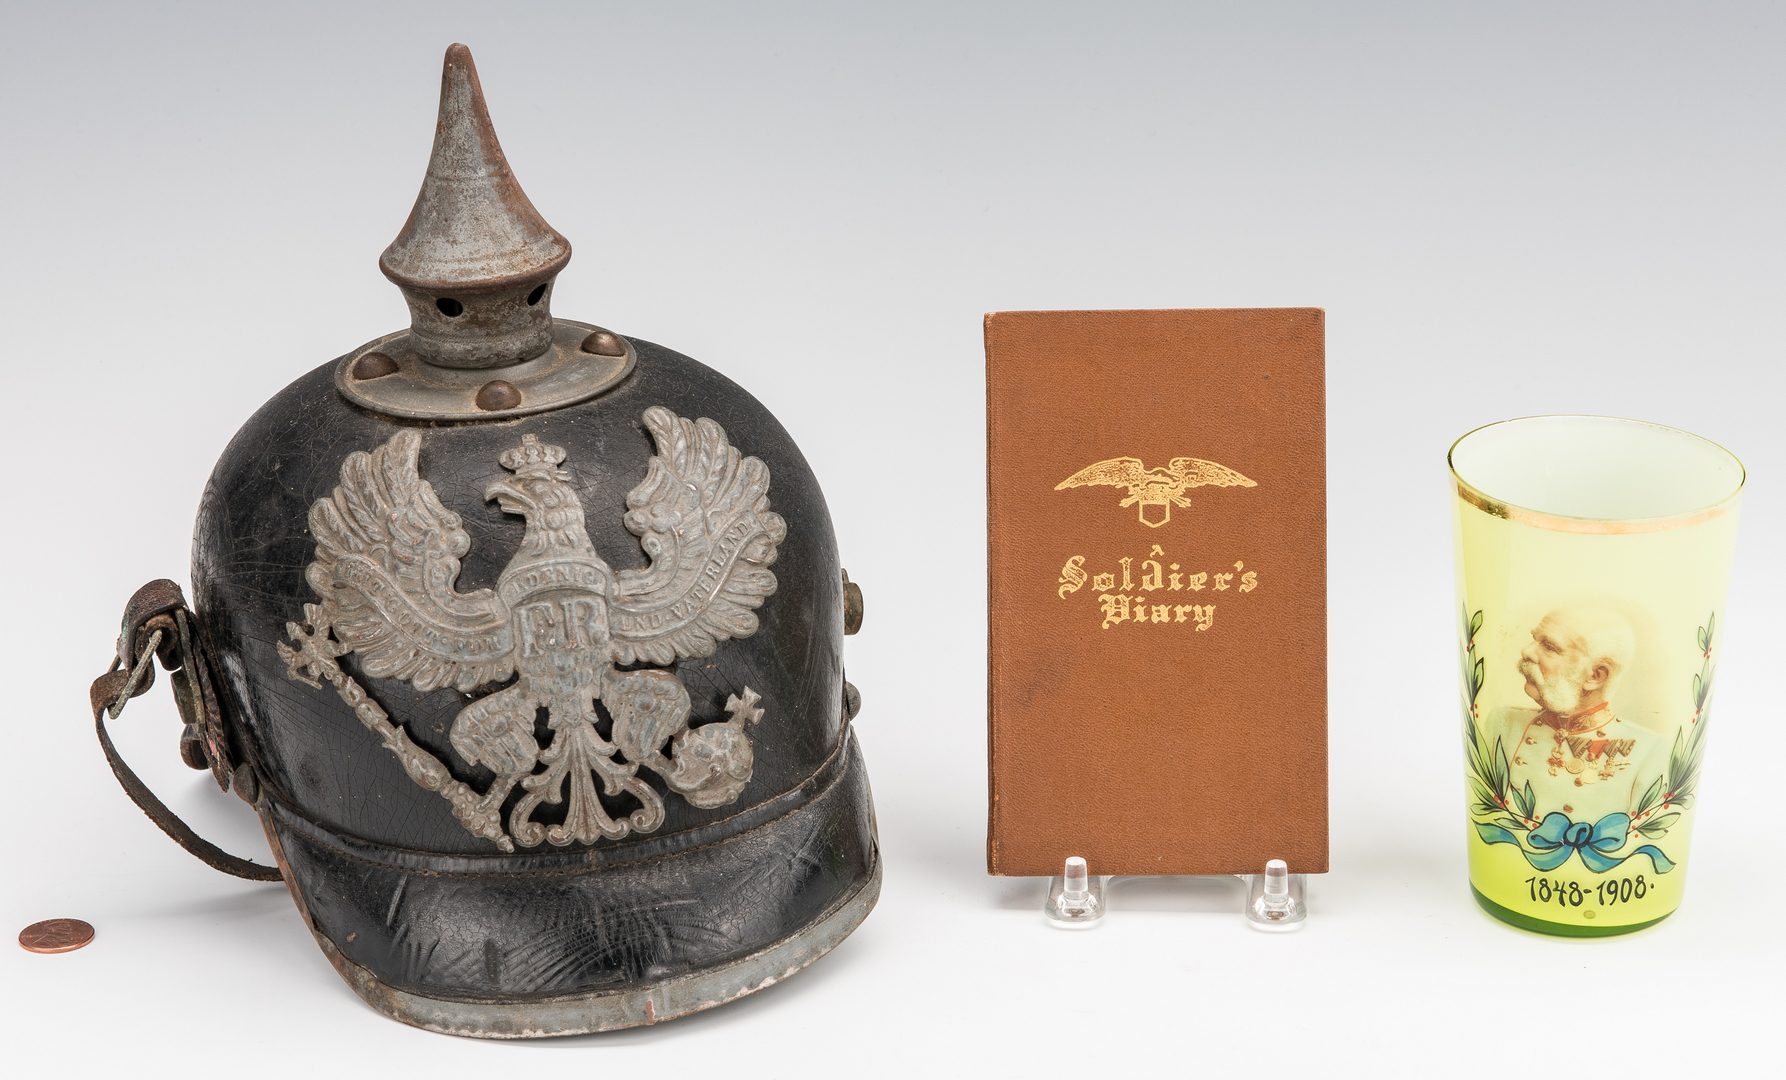 Lot 828: German WWI Pickelhaube Helmet,  WWI autograph book & Glass